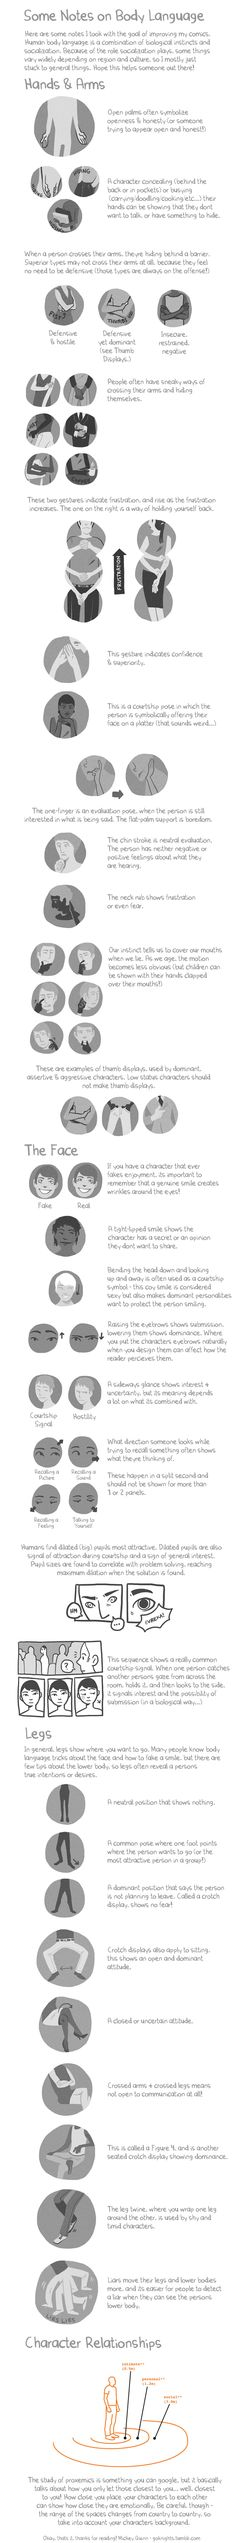 Body Language!  A Handy Visual Guide for Writers